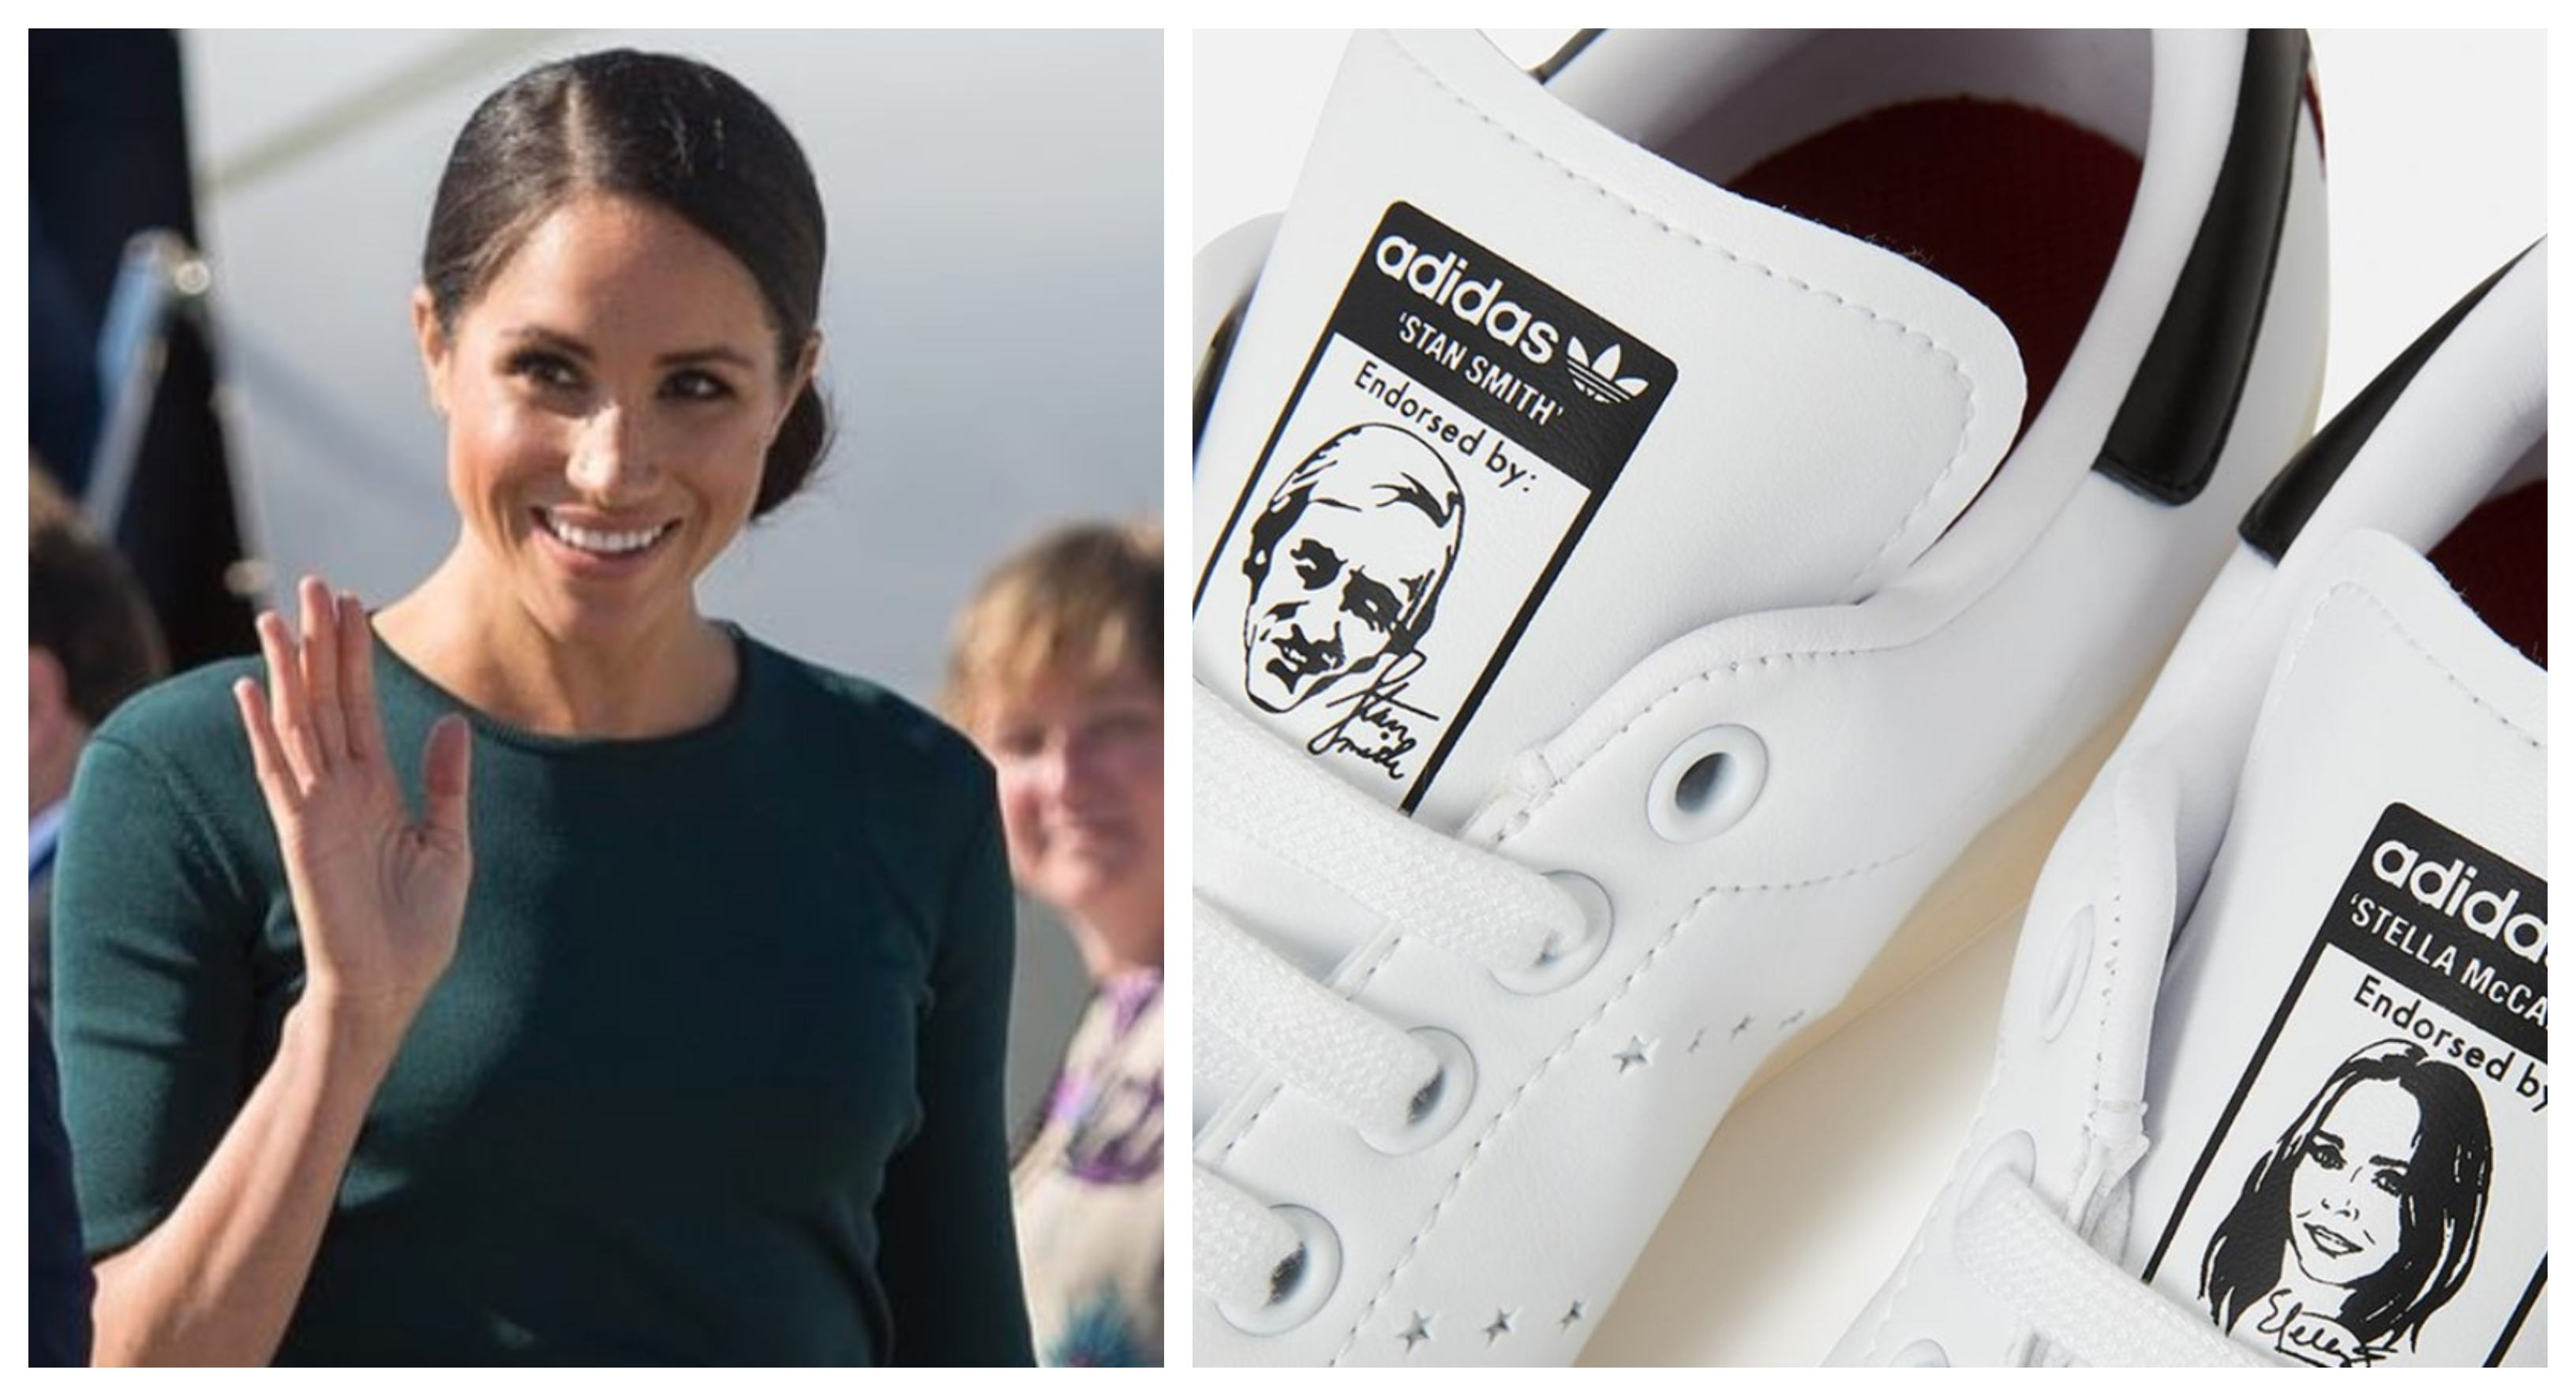 reputable site 136d7 f9e09 Pregnant Meghan Markle Shows Off Vegan Stan Smith Trainers